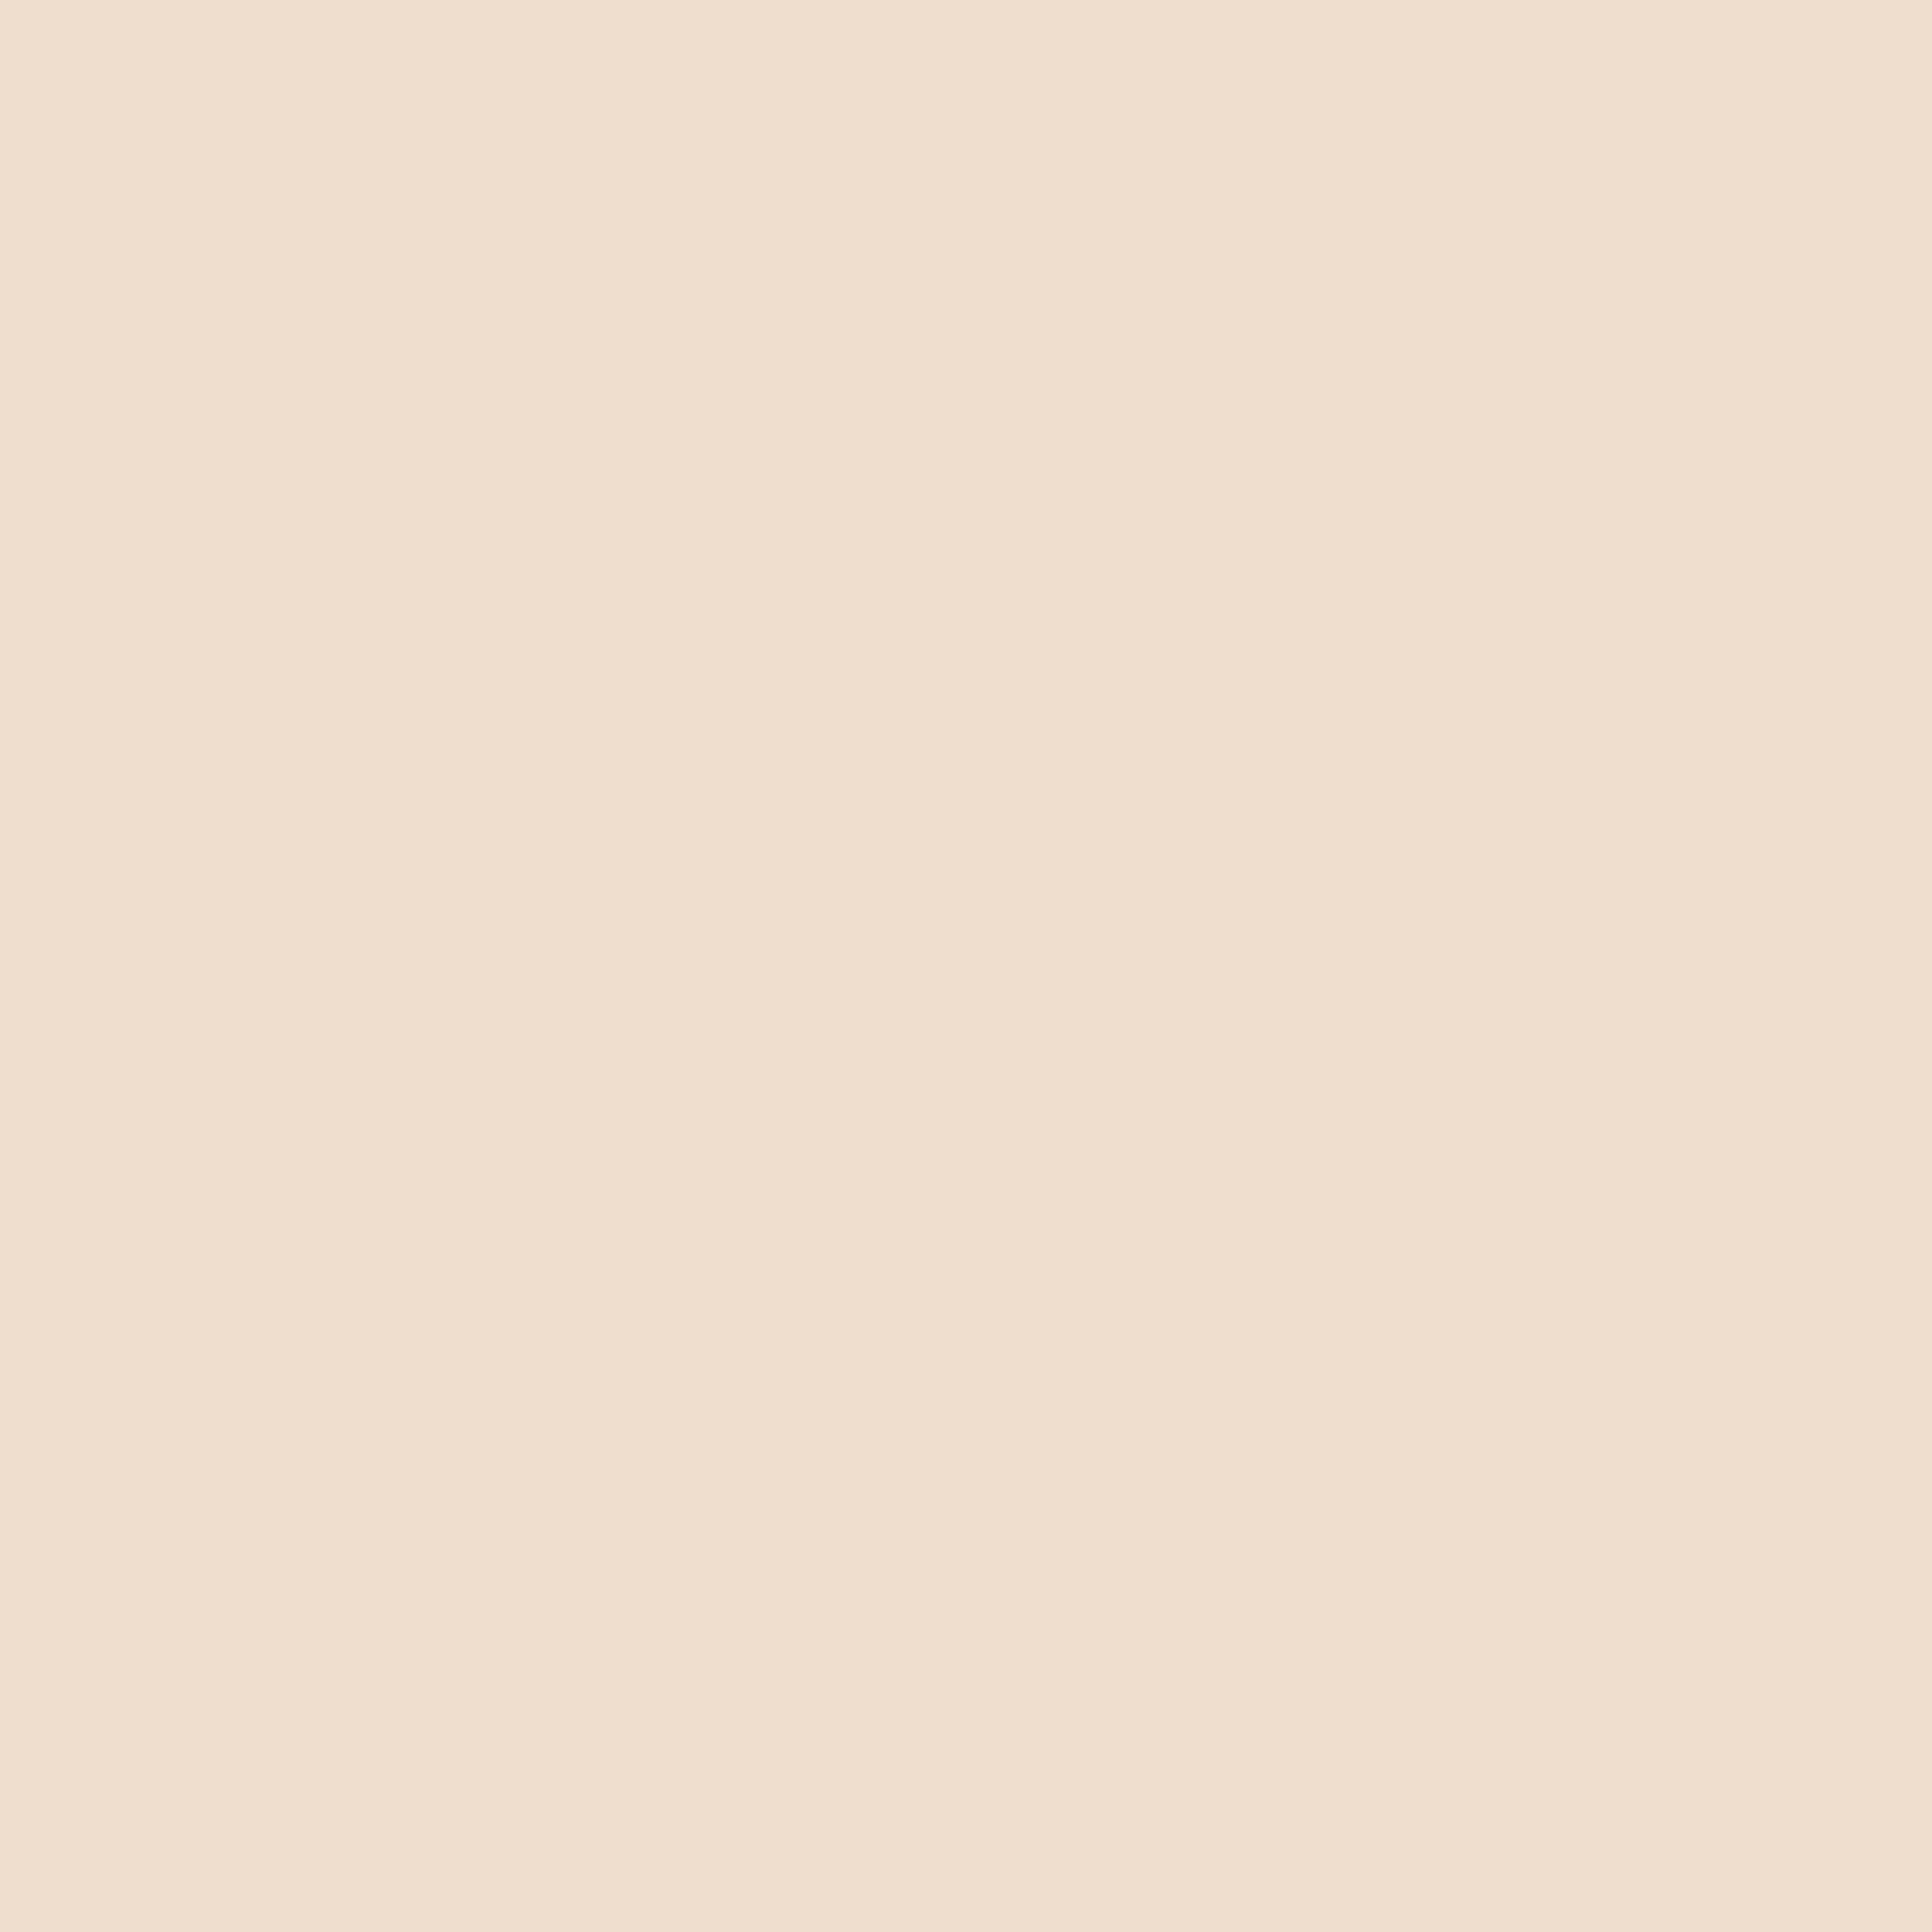 2732x2732 Almond Solid Color Background